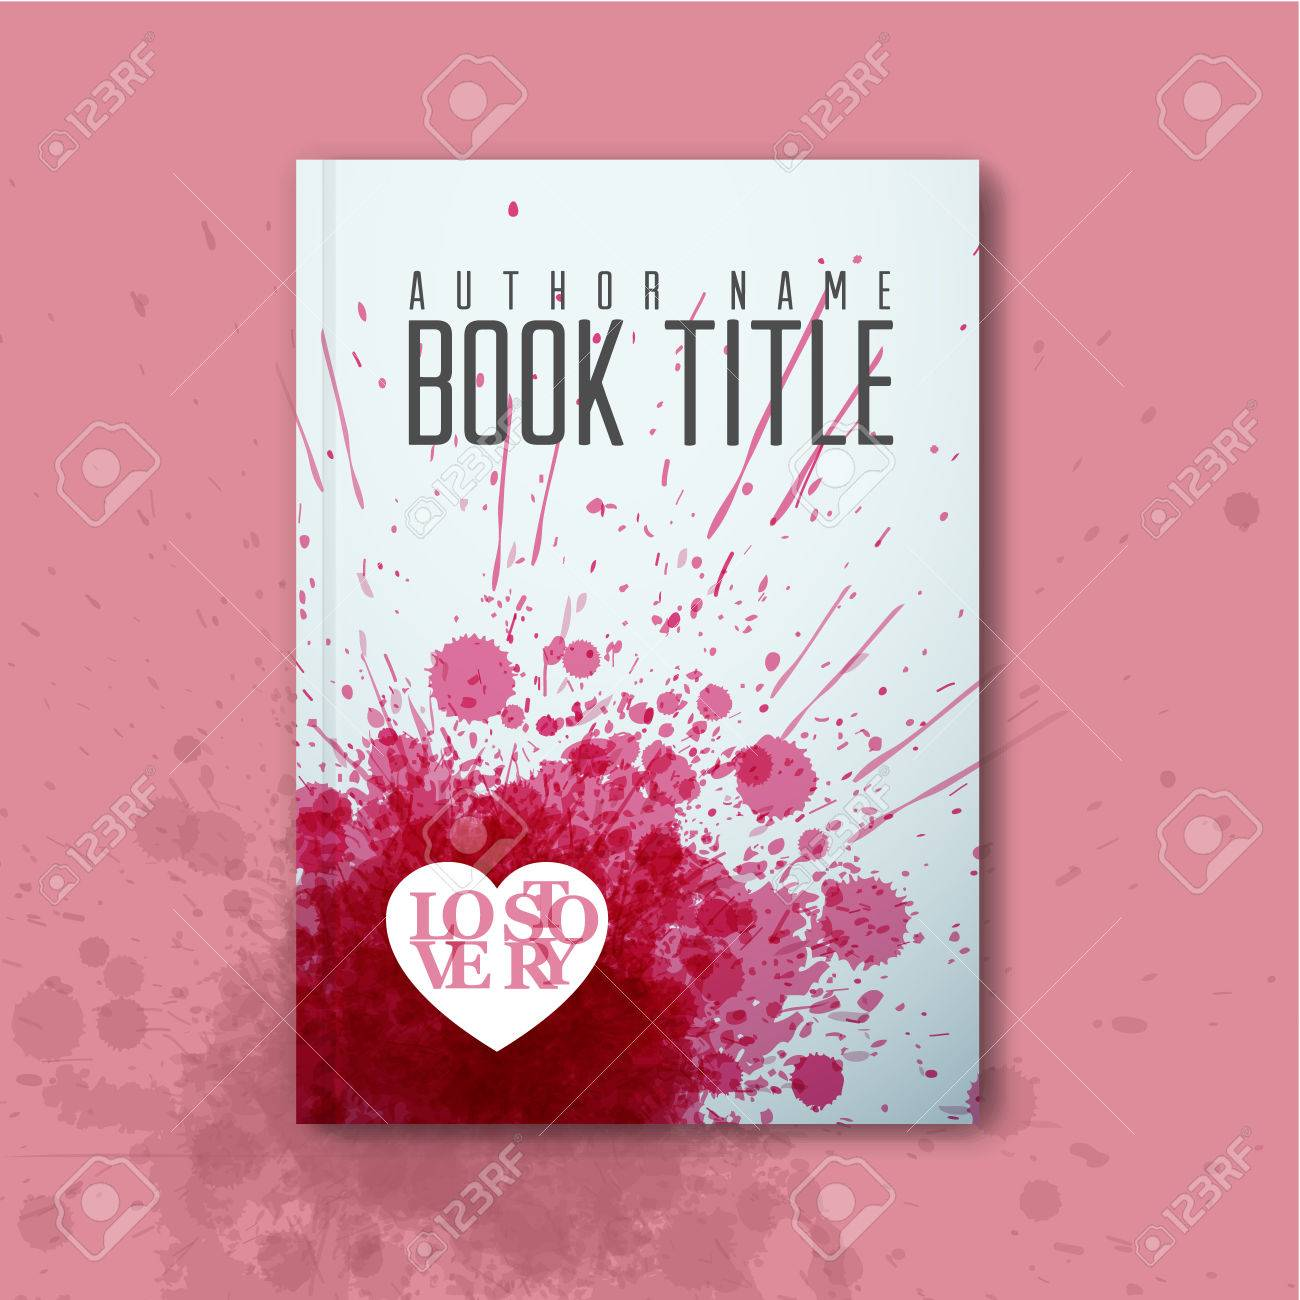 Modern Vector Abstract Book Cover Template For Love Story Royalty